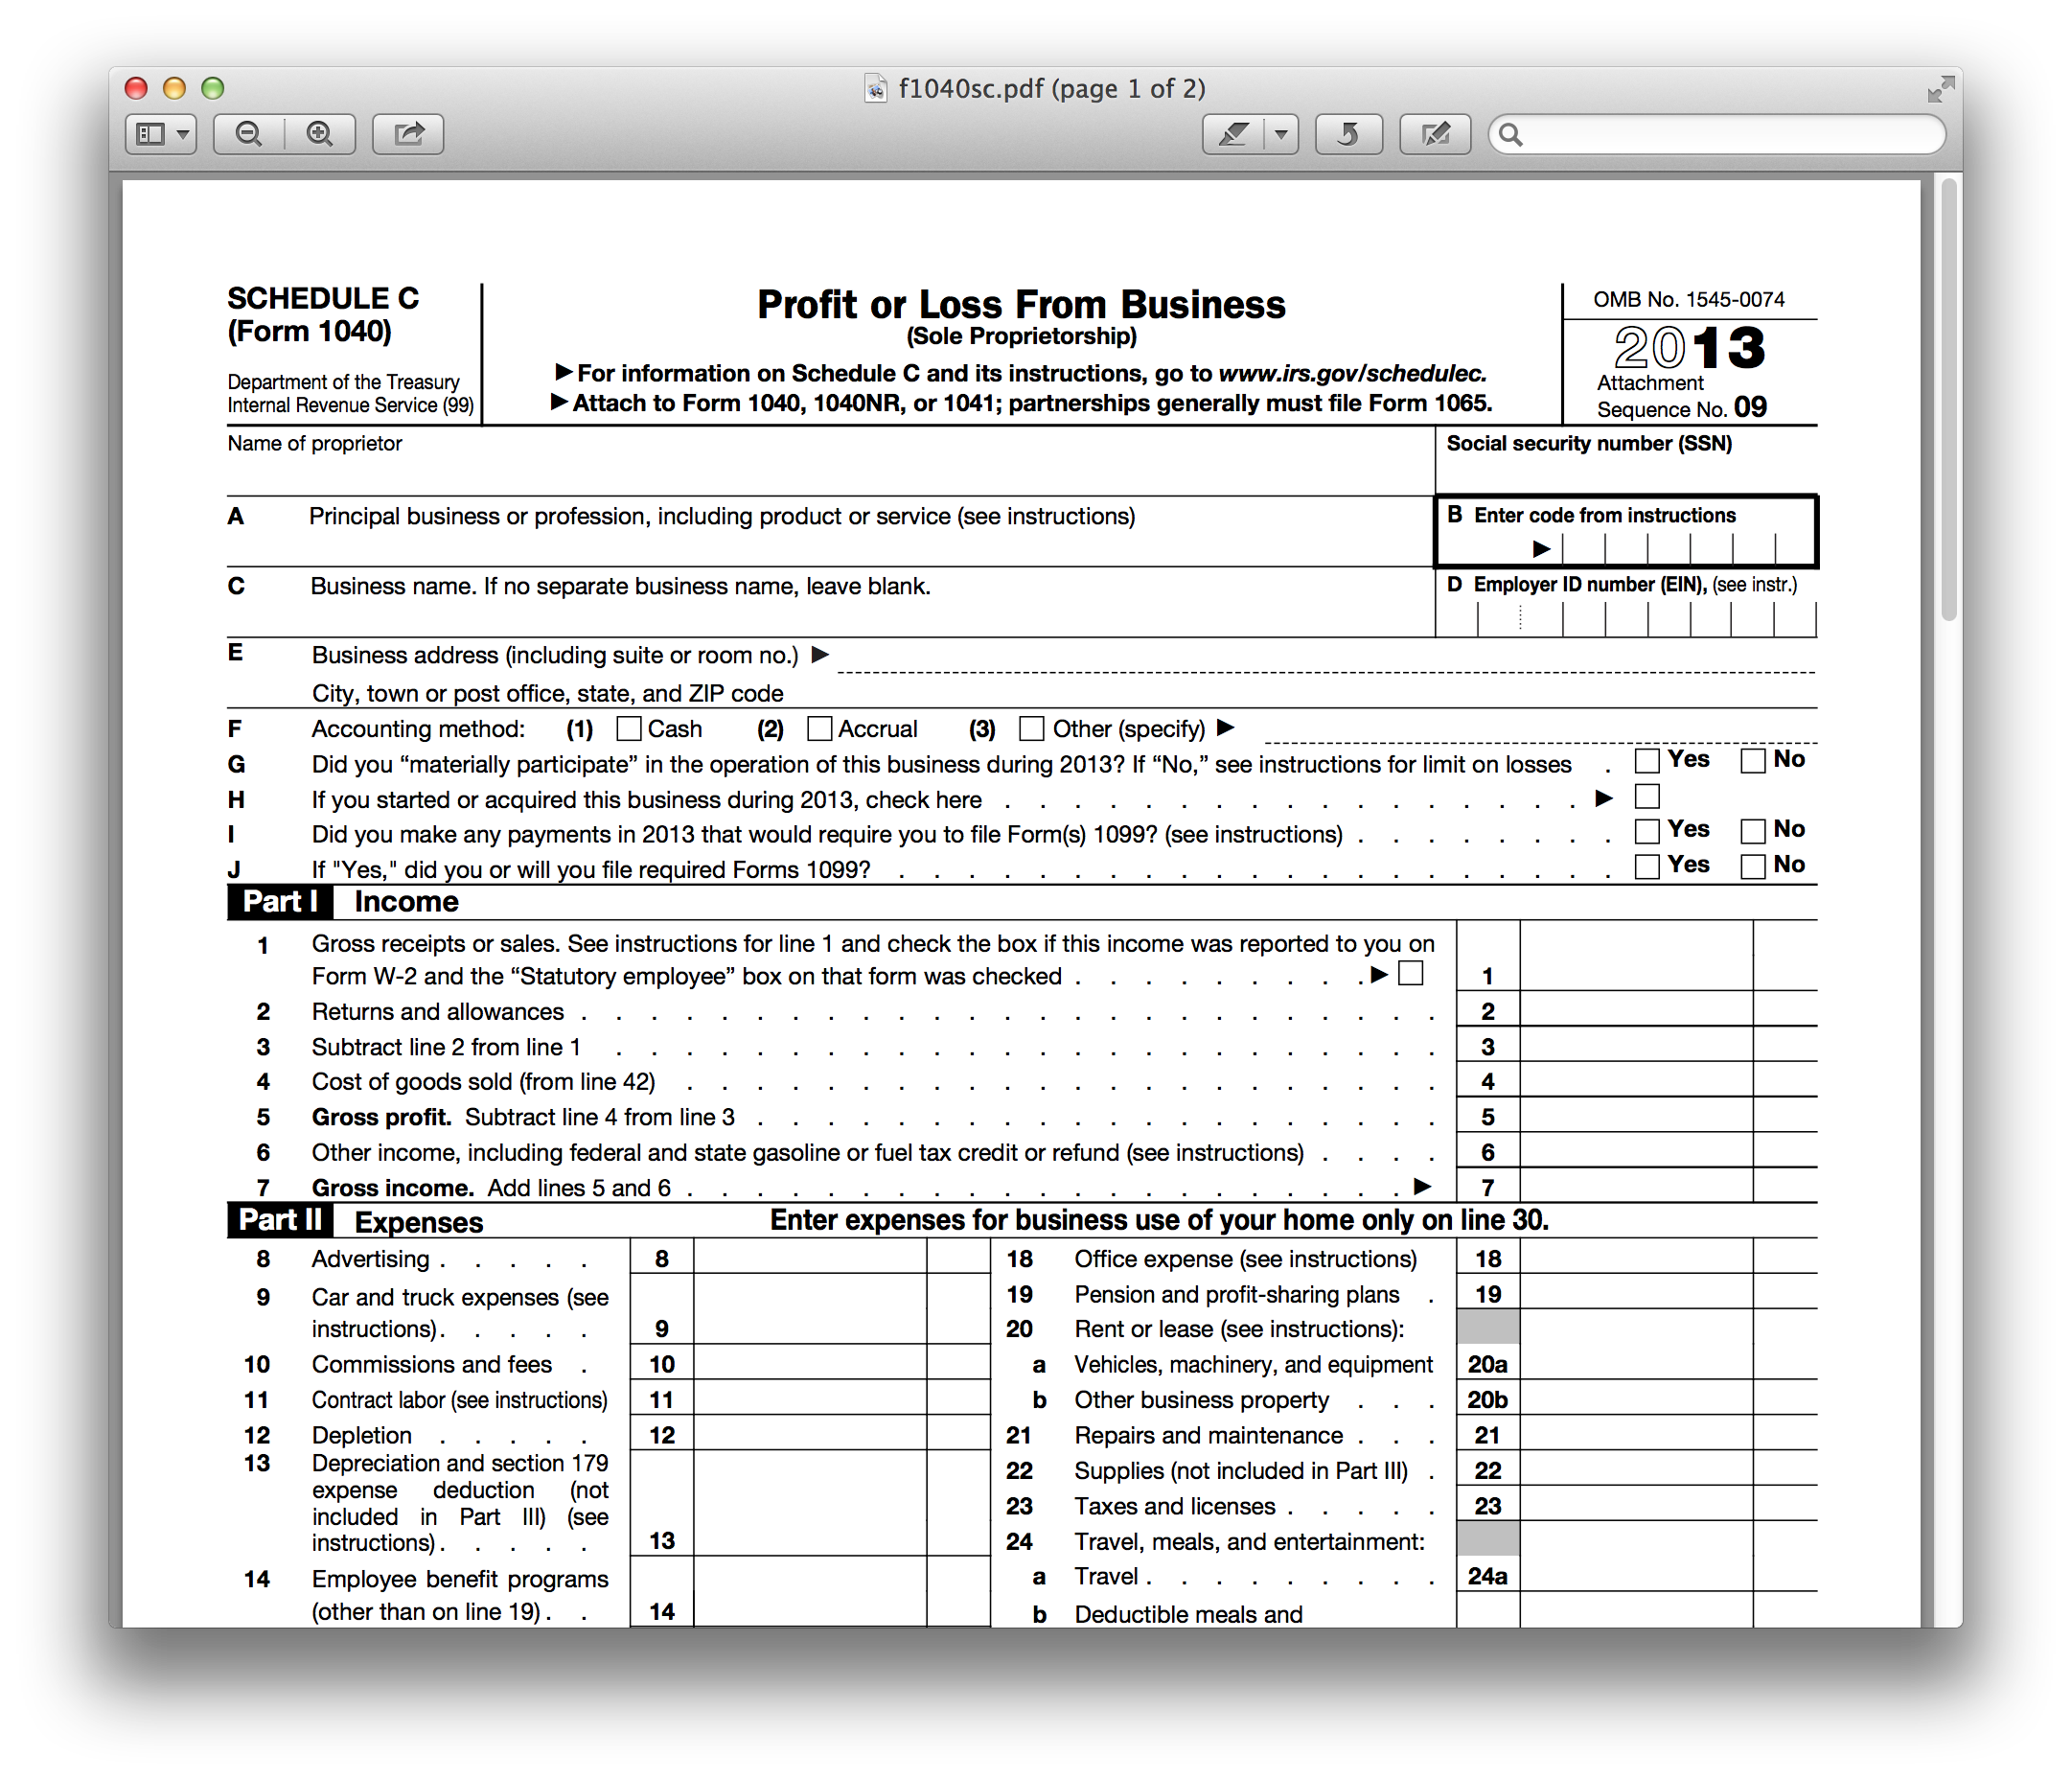 2013 IRS 1040 Tax Forms